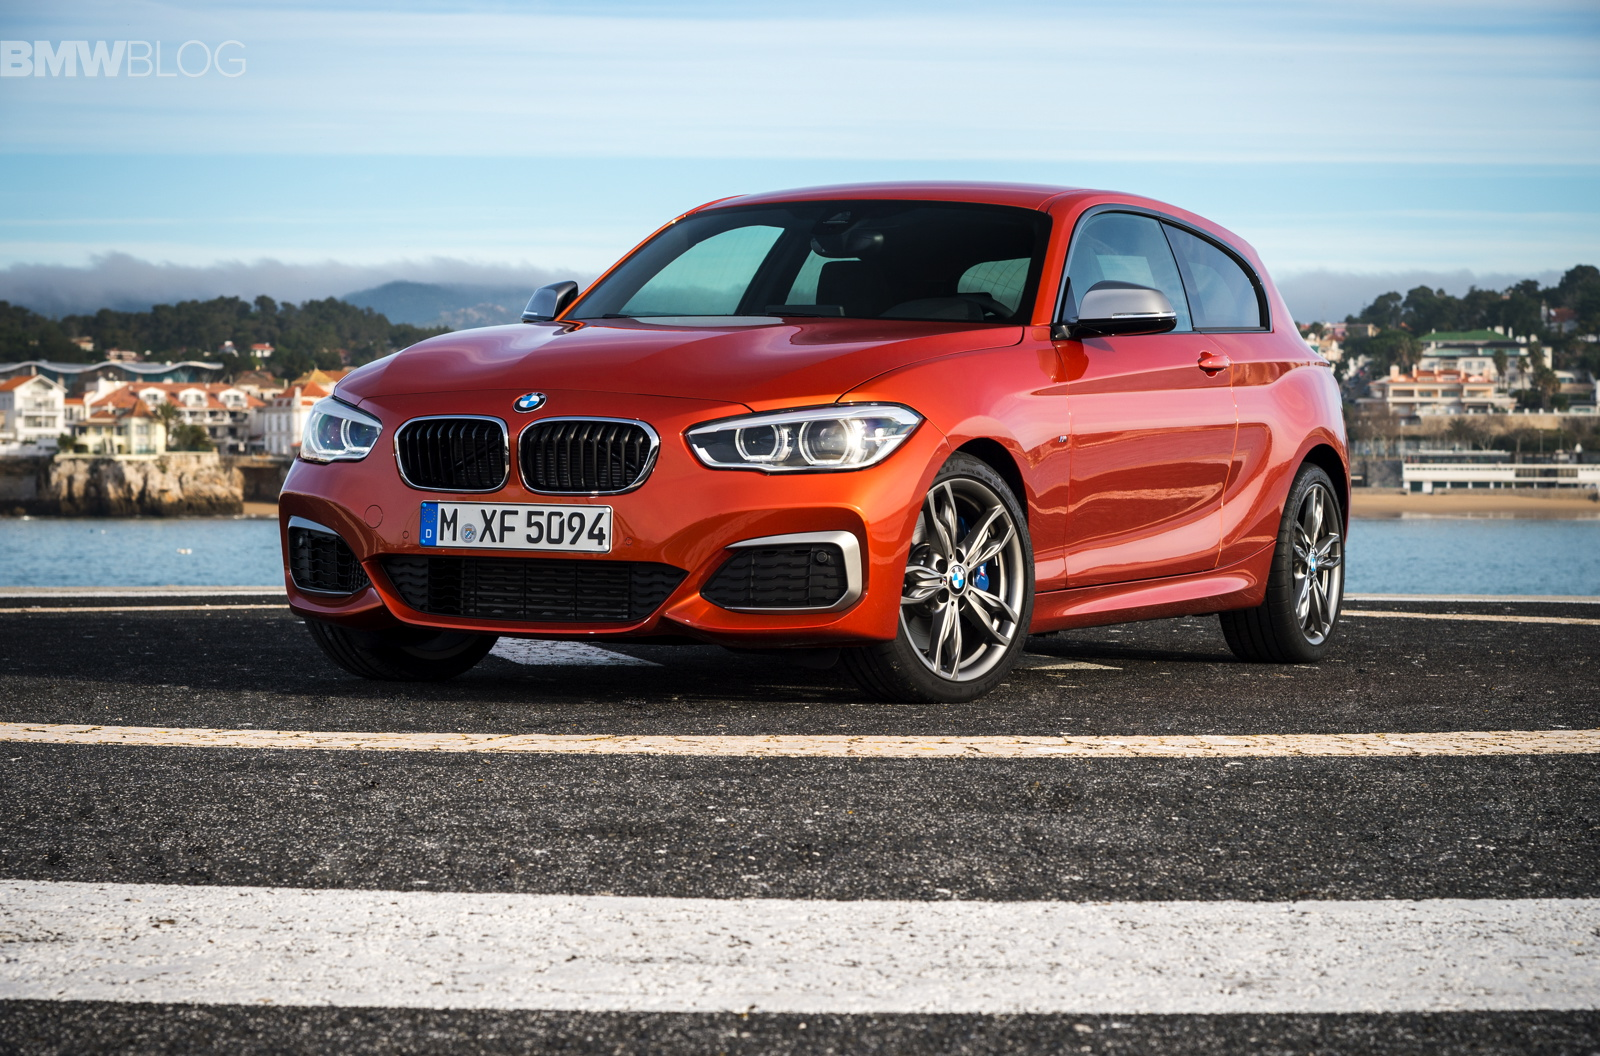 Bmw M140i Hatchback And M240i Coupe Convertible To Launch